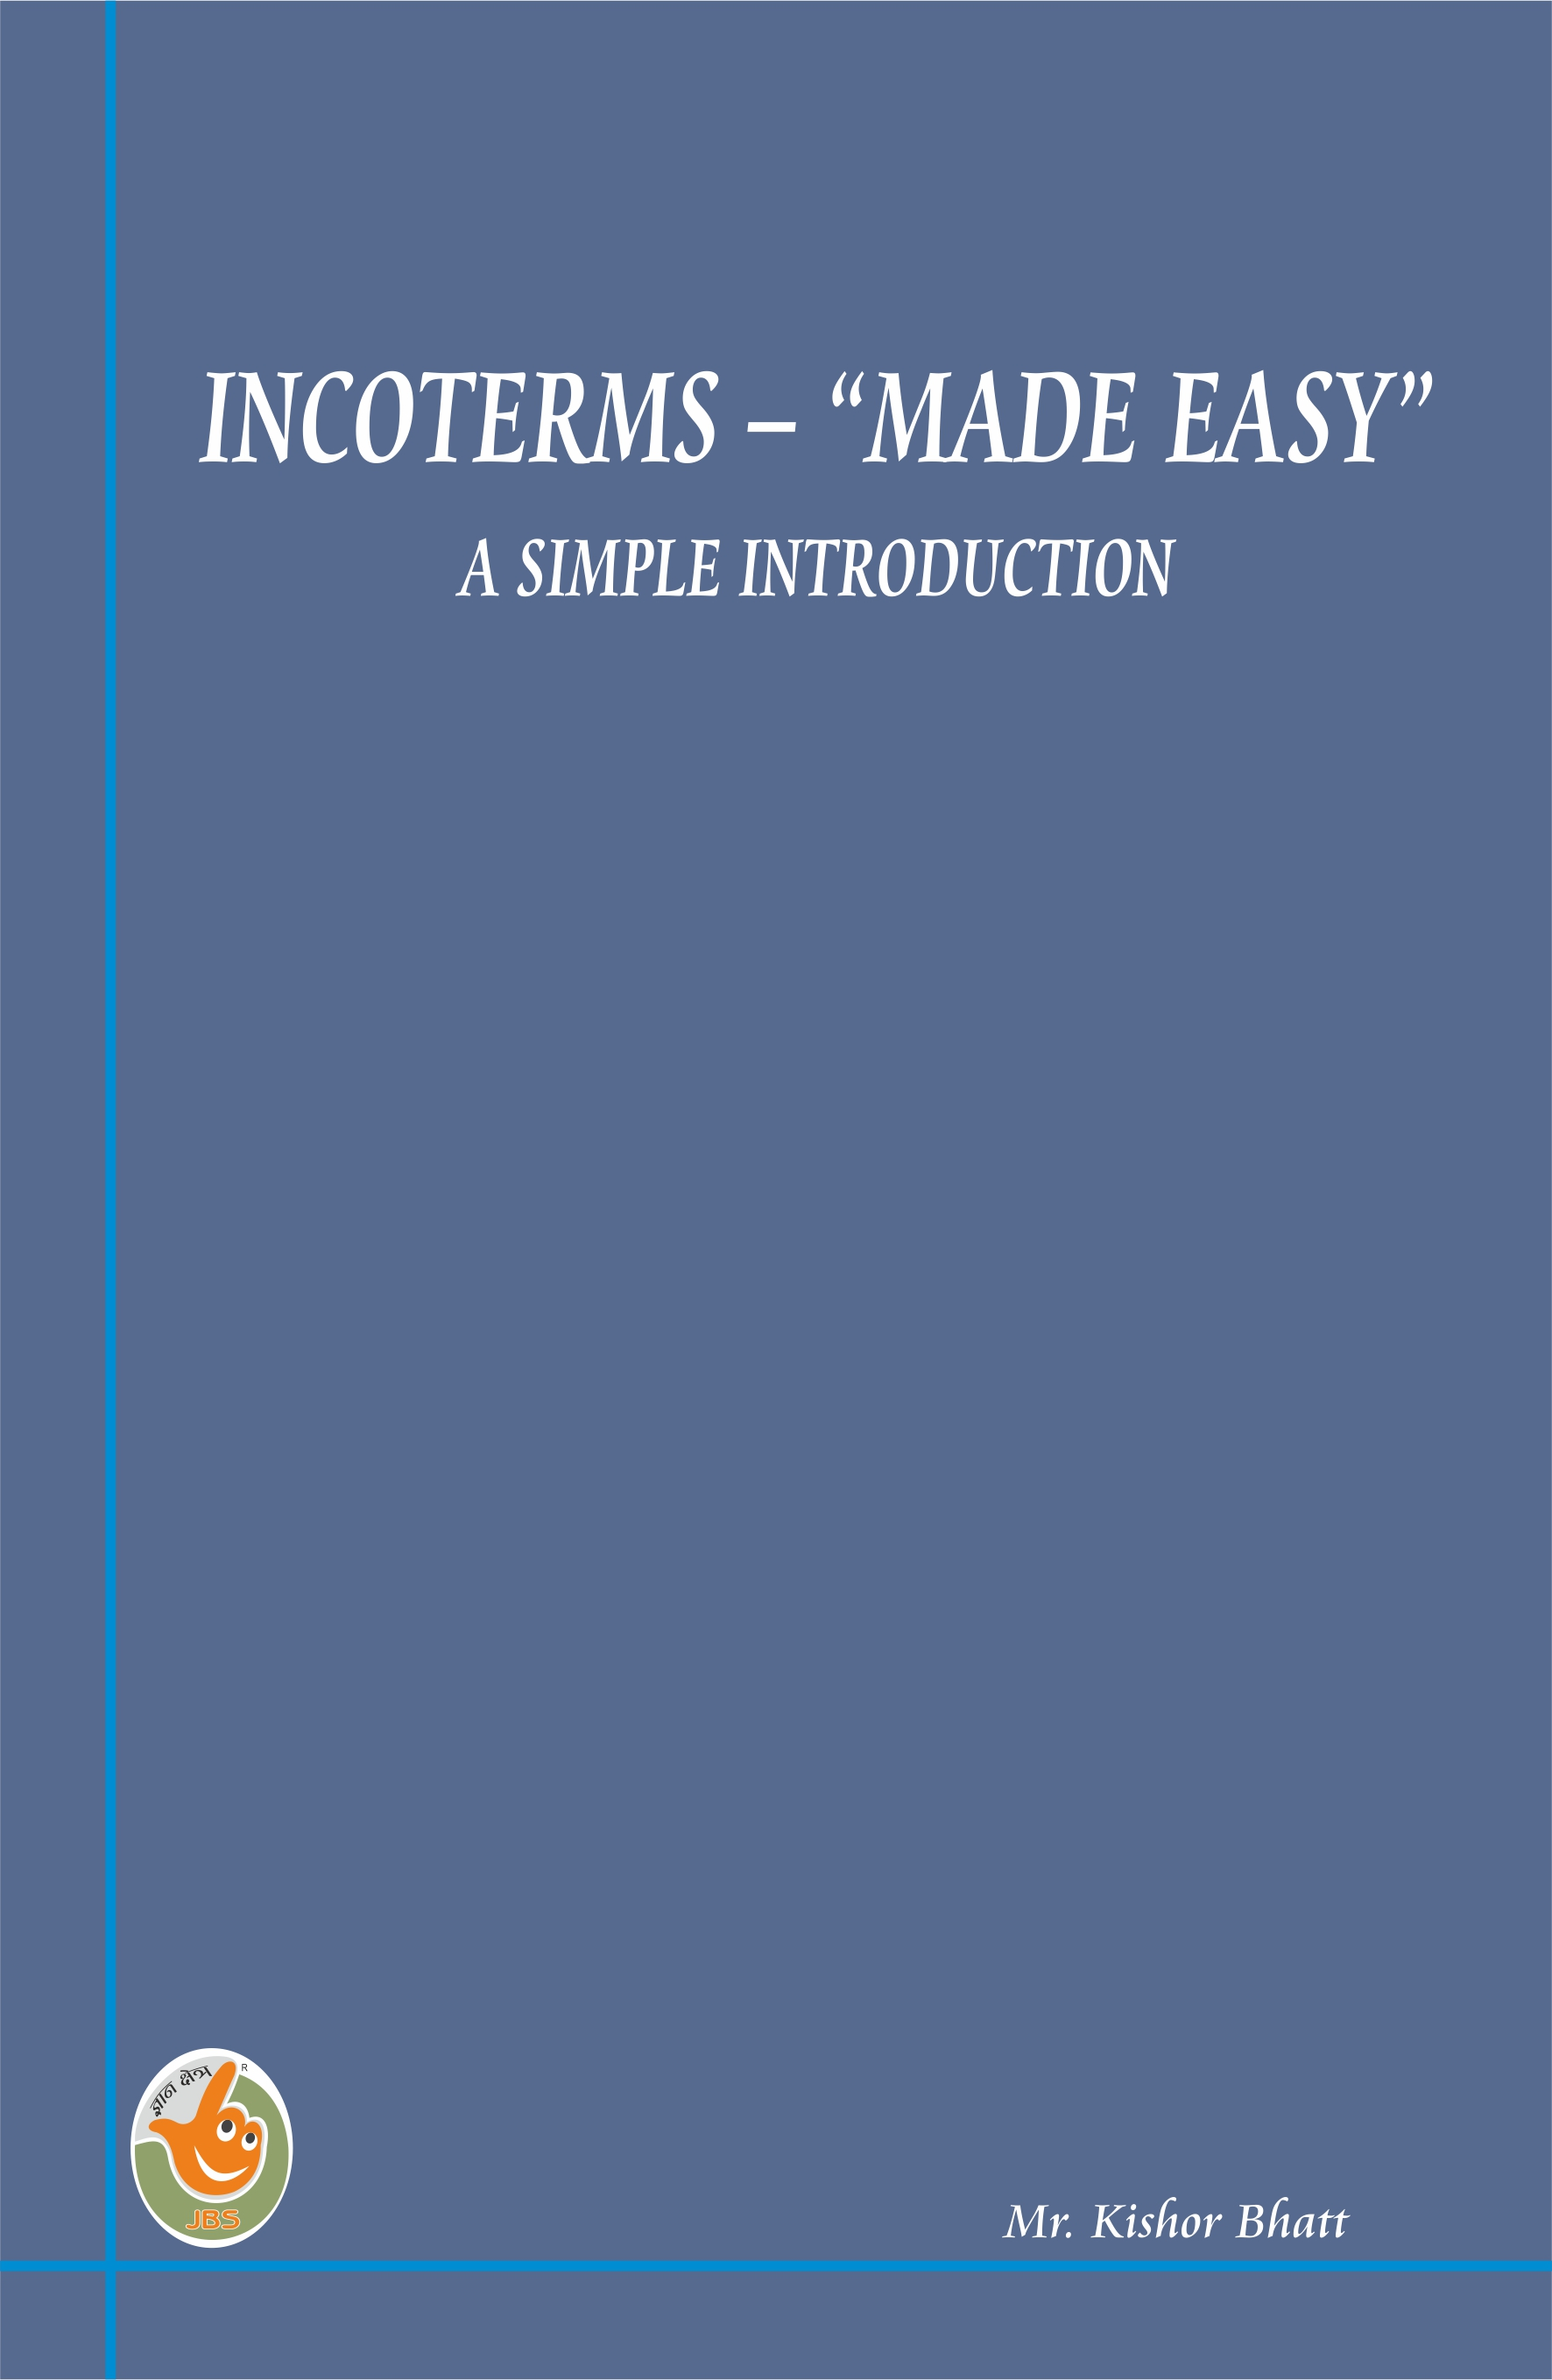 """INCOTERMS – """"Made Easy"""" a simple introduction"""